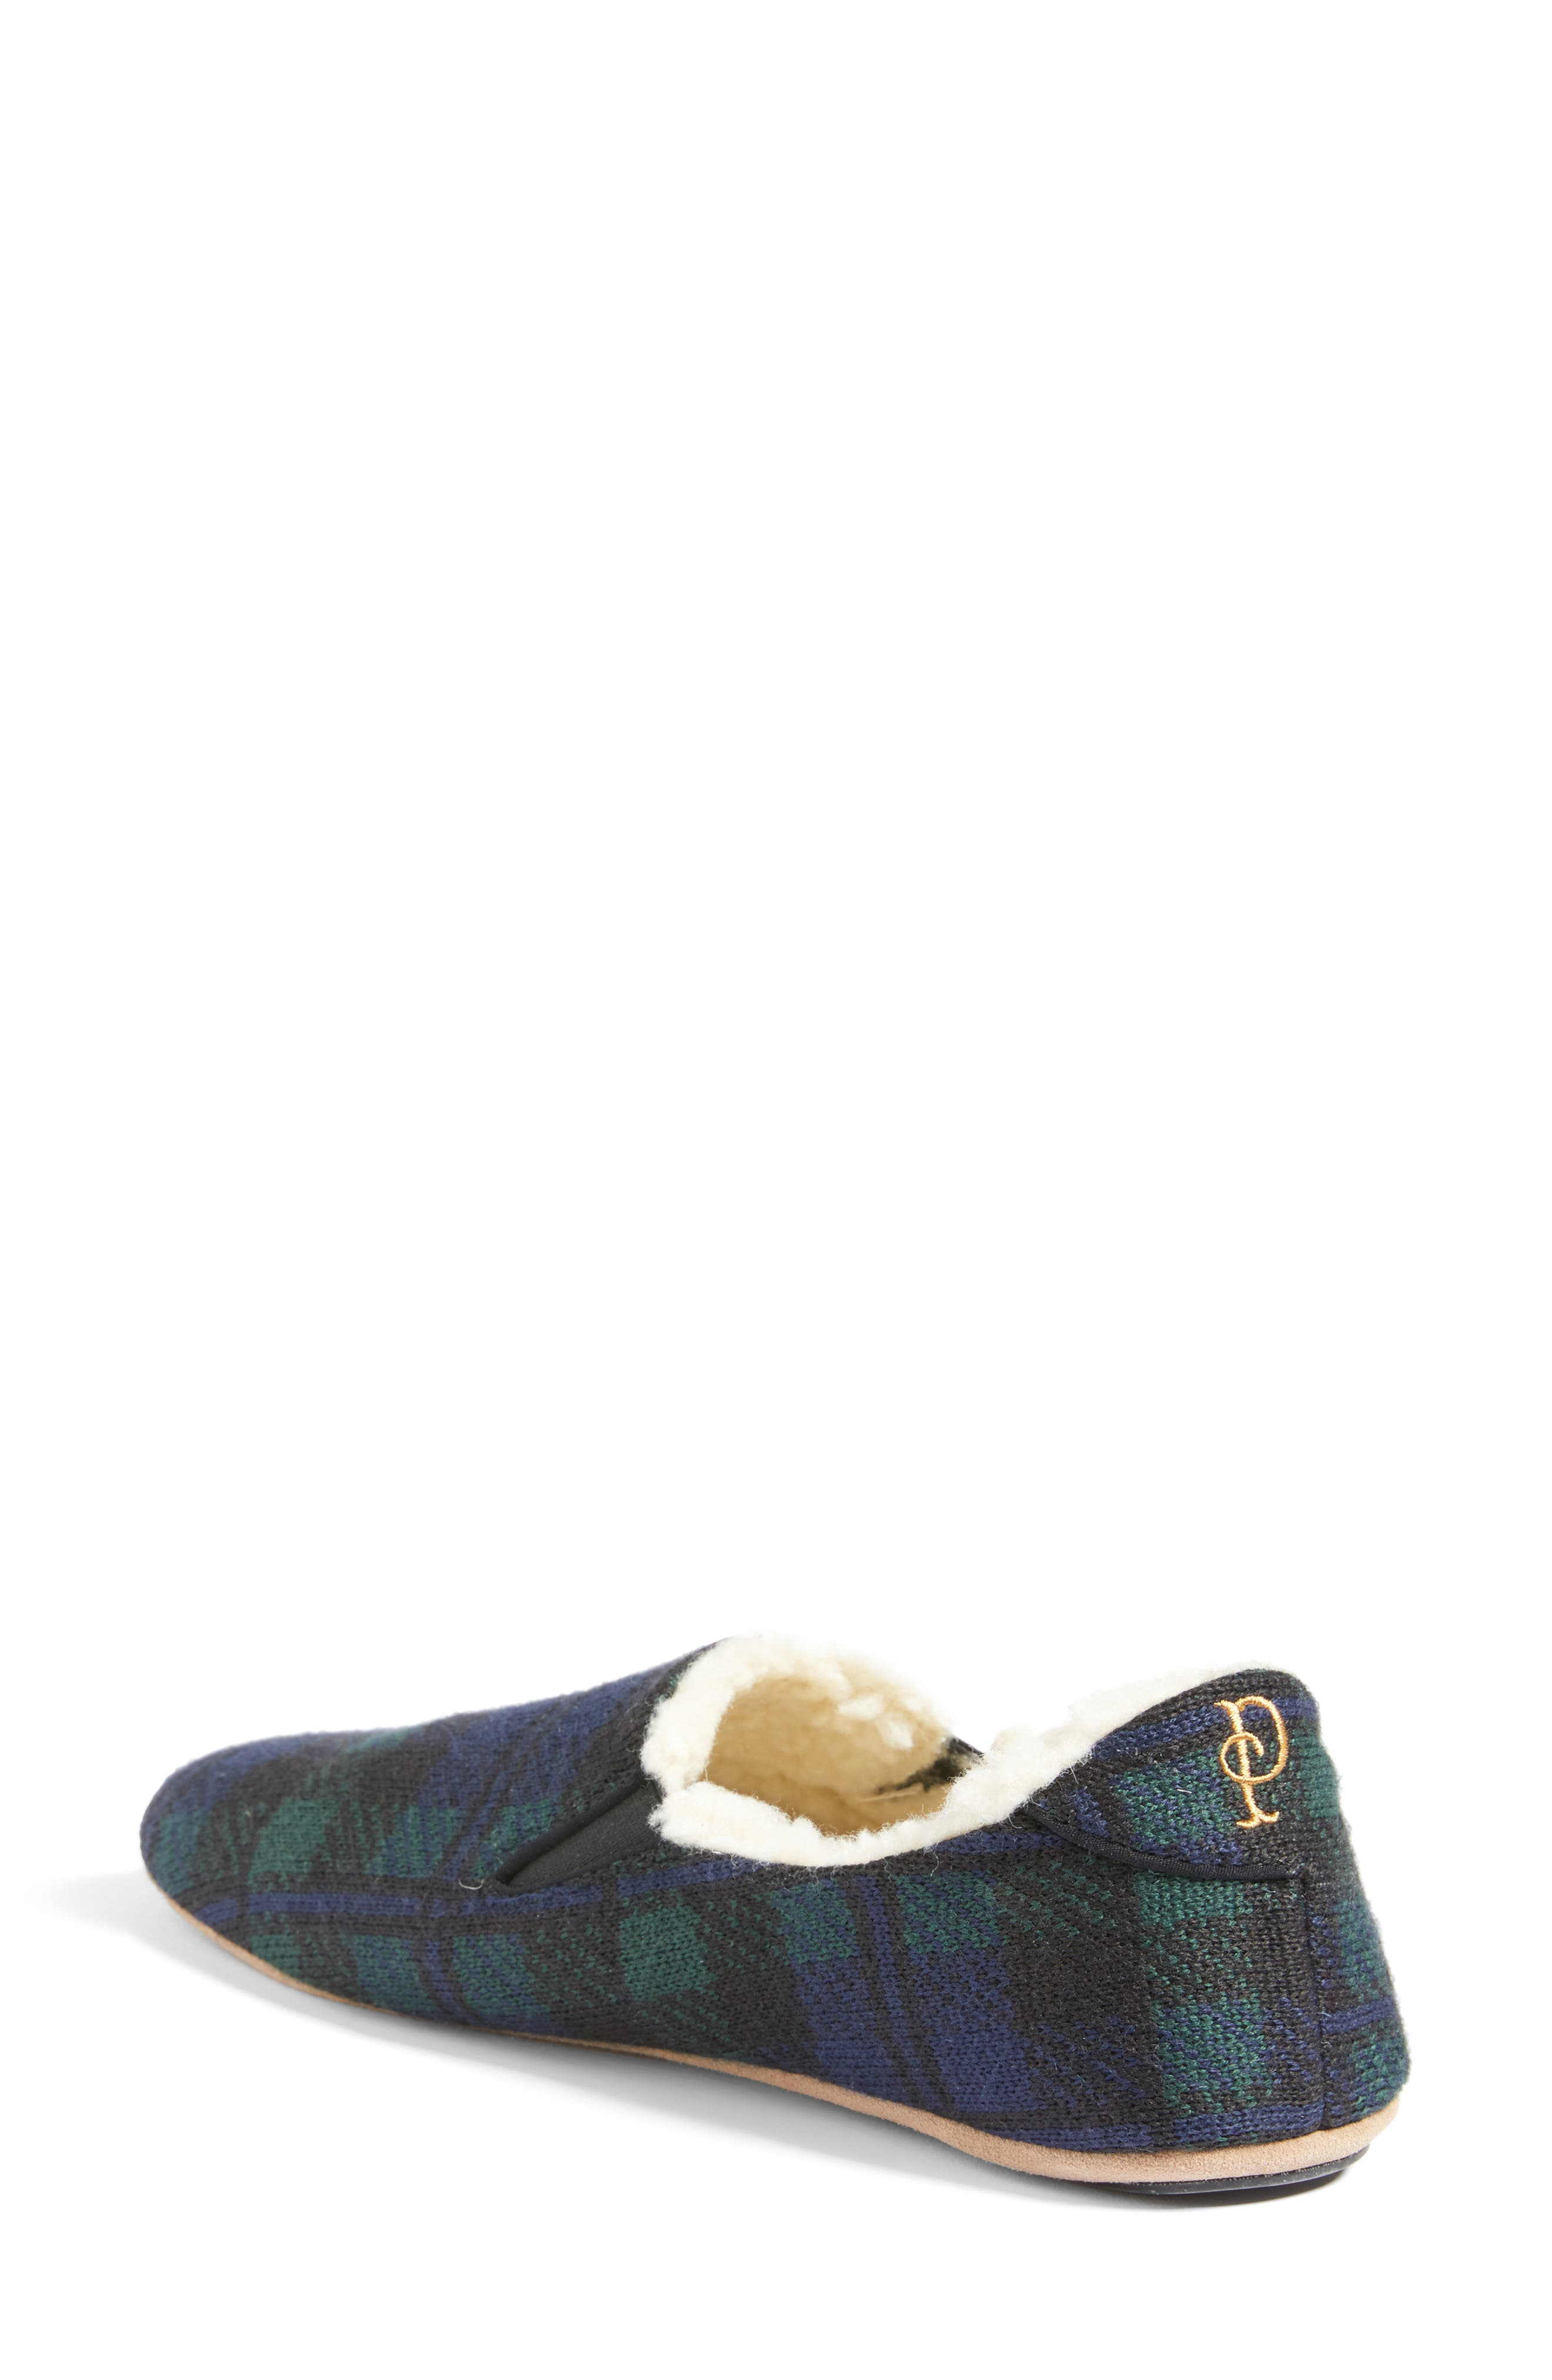 Black Watch Plaid Nomad Slippers,                             Alternate thumbnail 2, color,